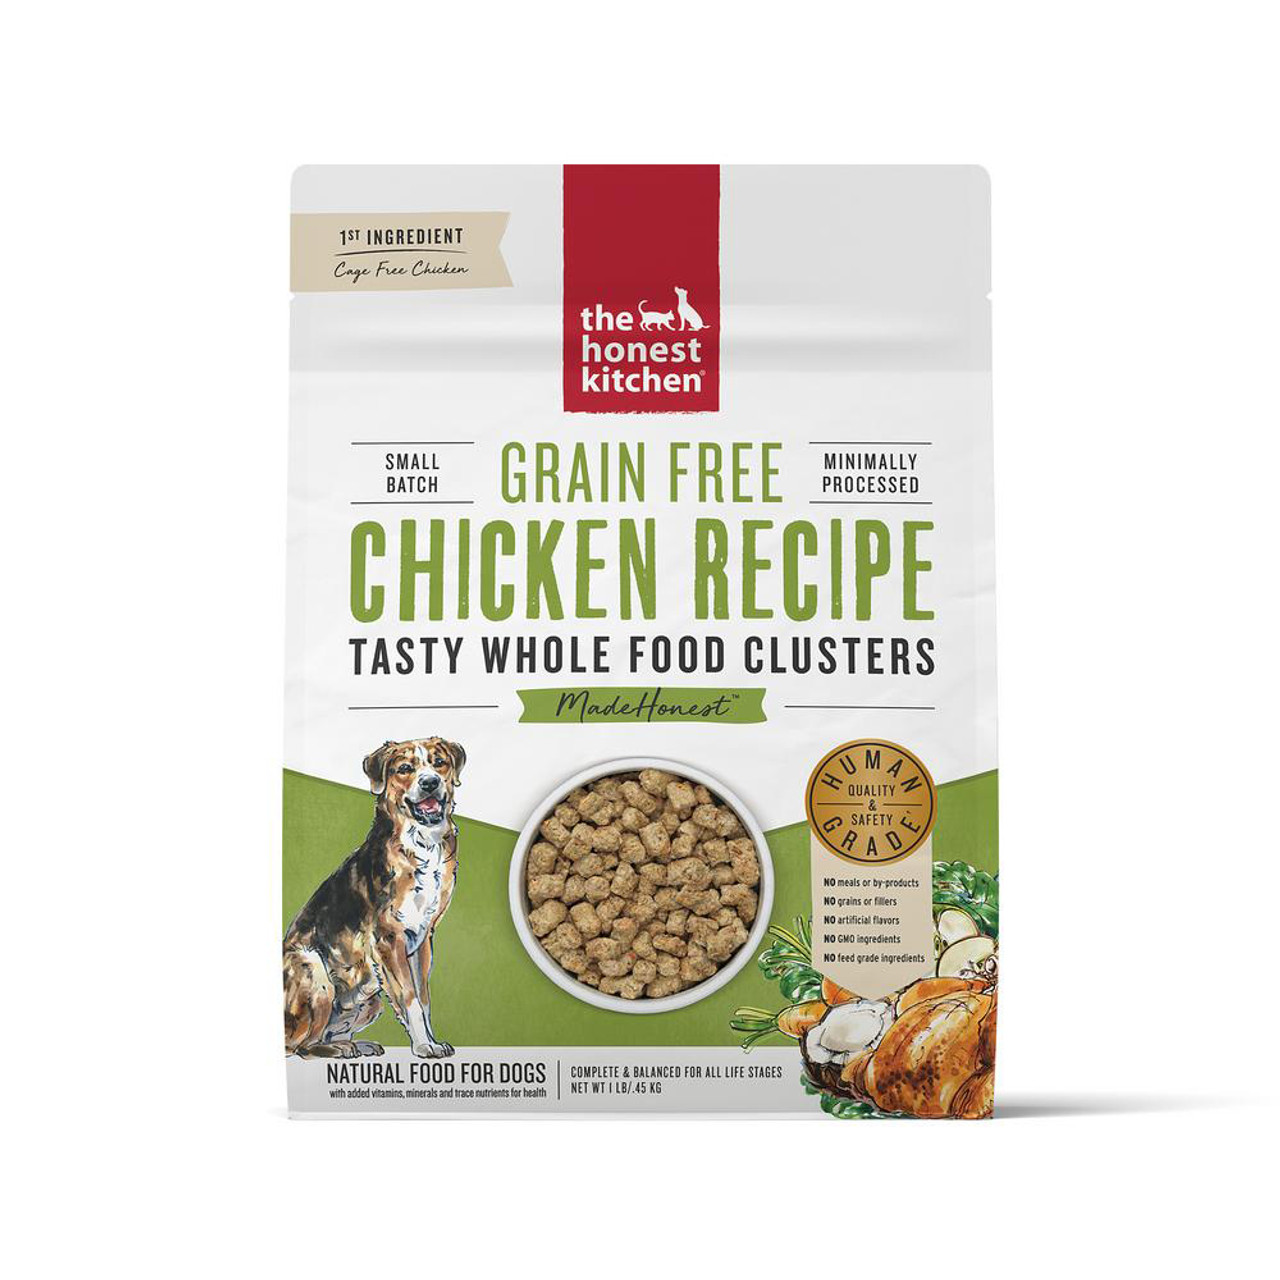 The Honest Kitchen Whole Food Clusters Grain Free Chicken Recipe Dry Dog Food